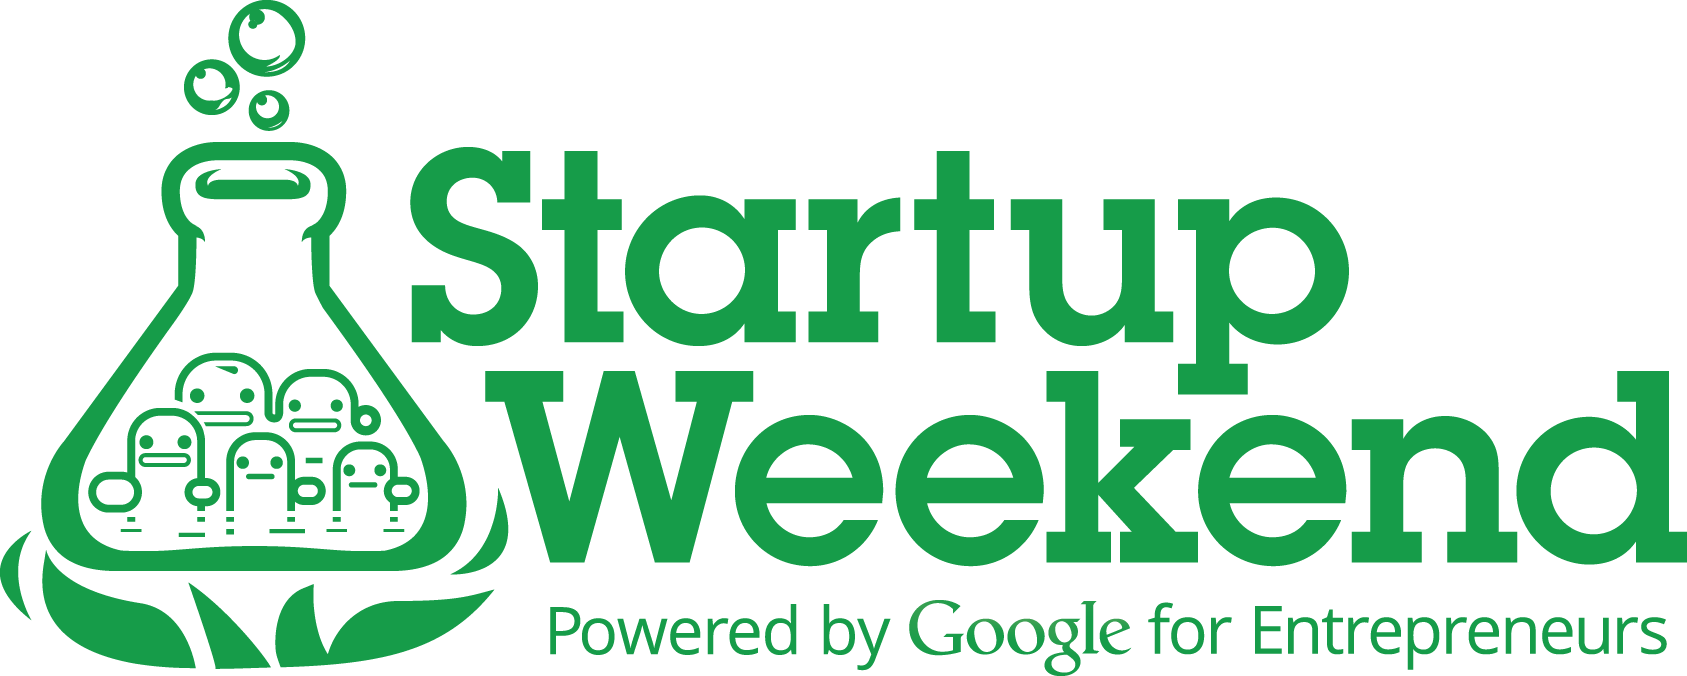 Startup Weekend (powered by Google for Entrepreneurs) icon